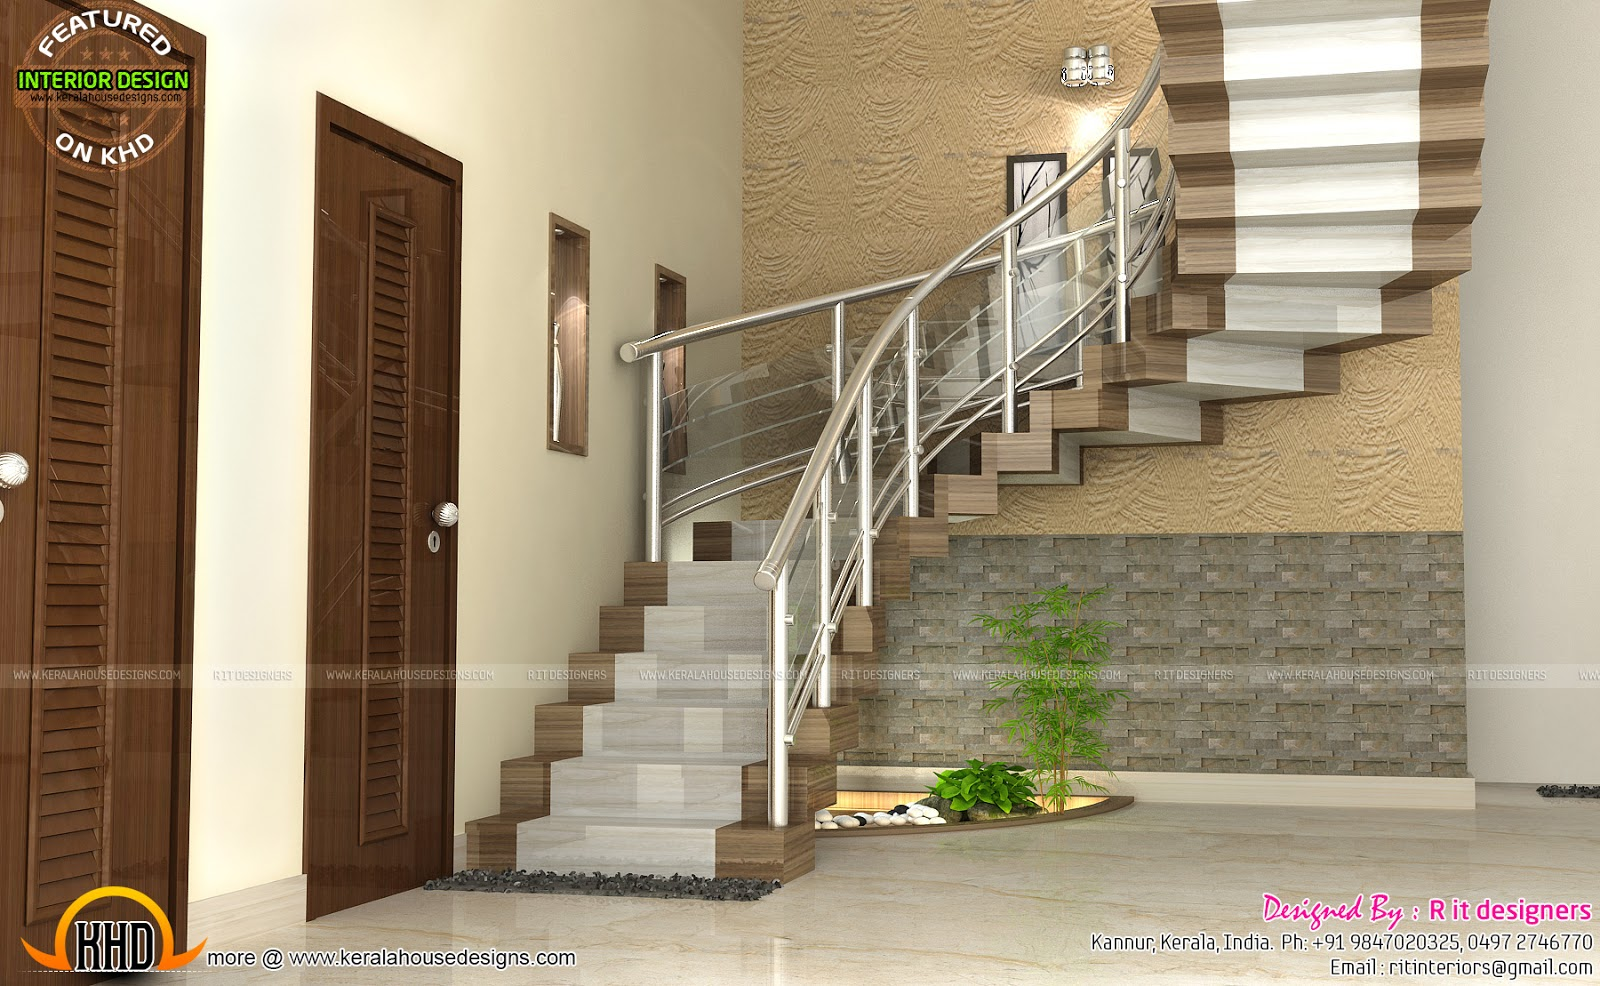 Modular kitchen bedroom and staircase interior kerala for Kerala model interior designs